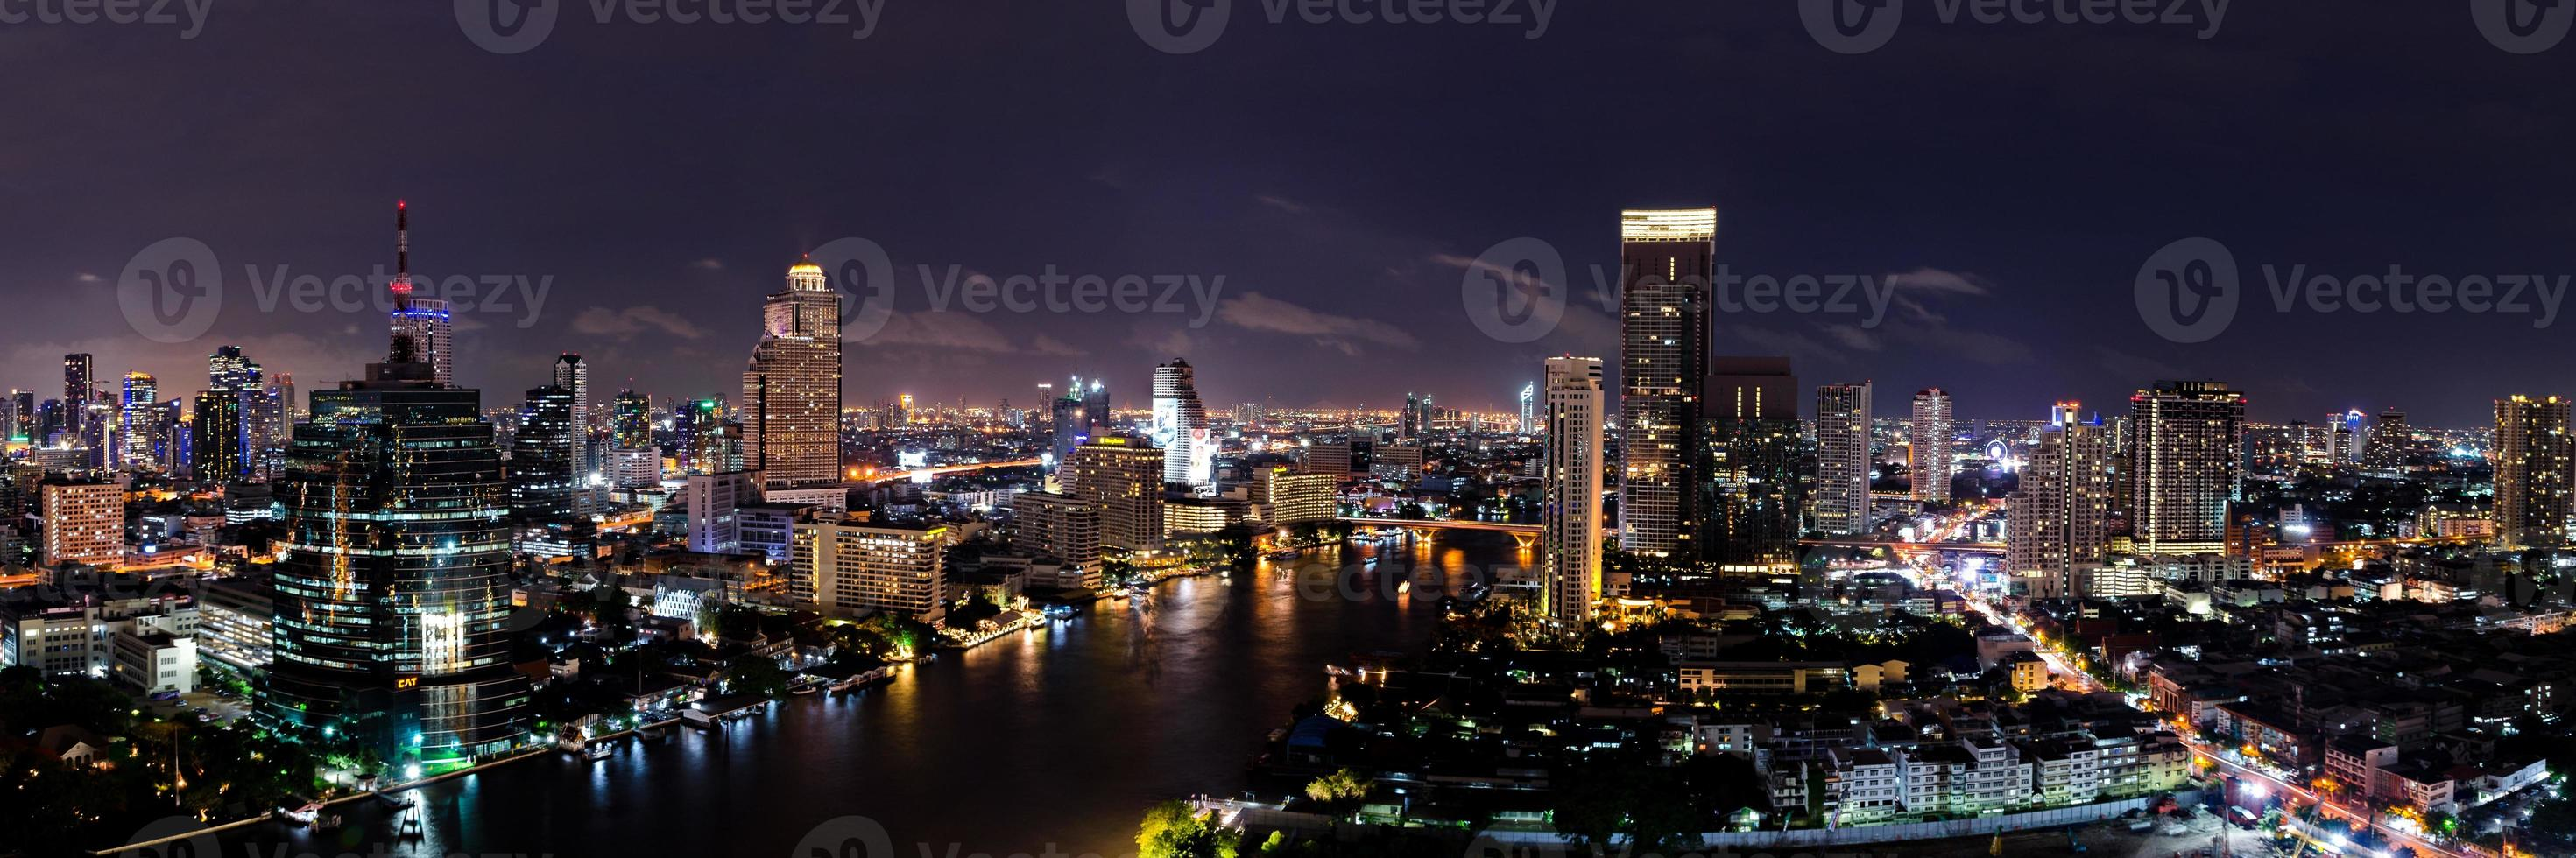 Bangkok Thailand midtown skyline at night with skyscrapers photo